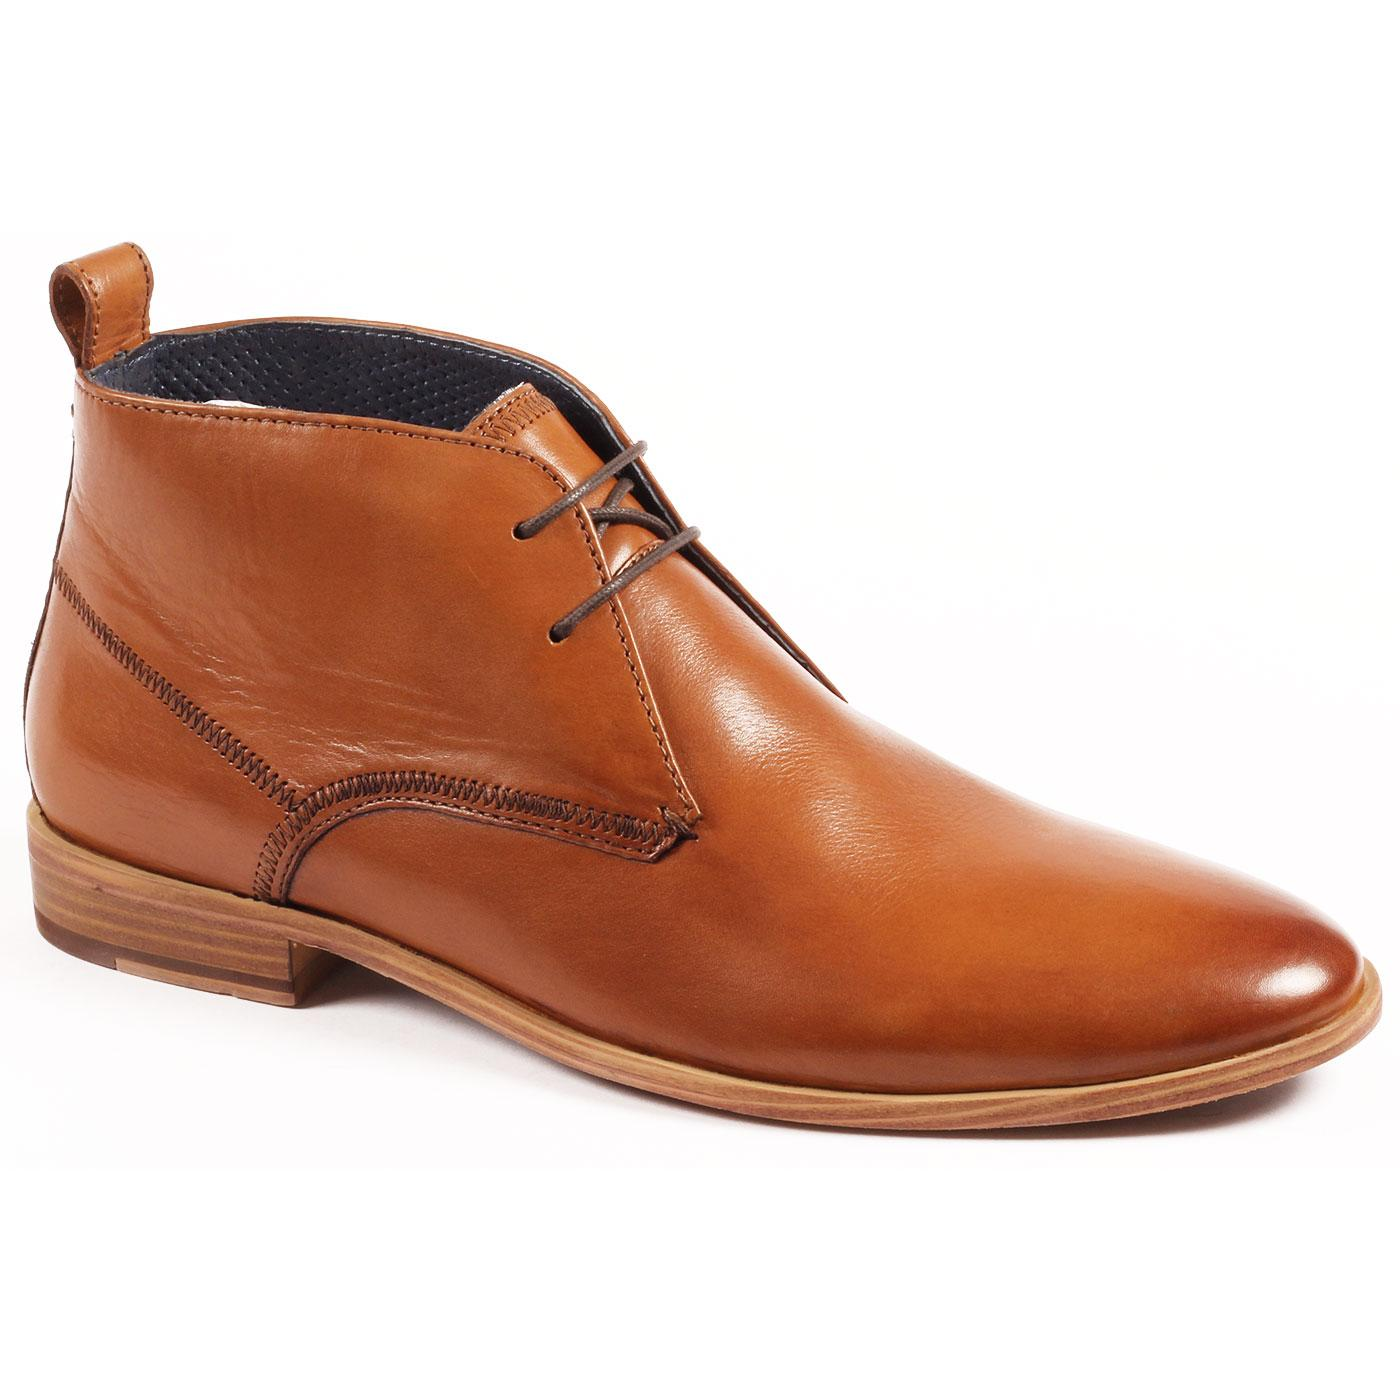 Player PAOLO VANDINI Mod Leather Chukka Boots TAN